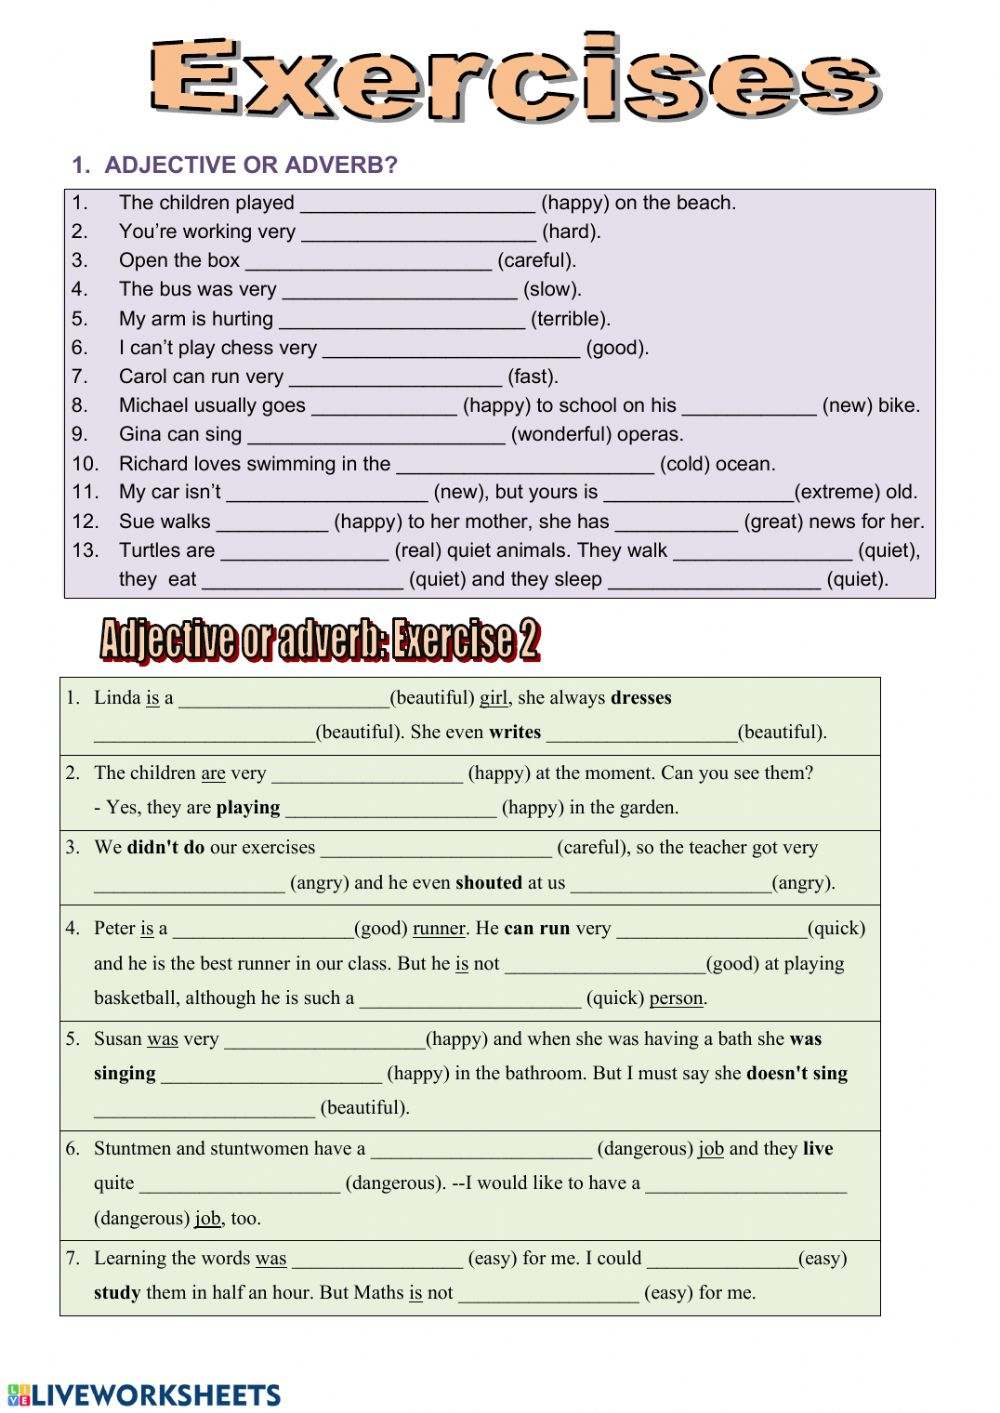 Adjective or Adverb 2 worksheet